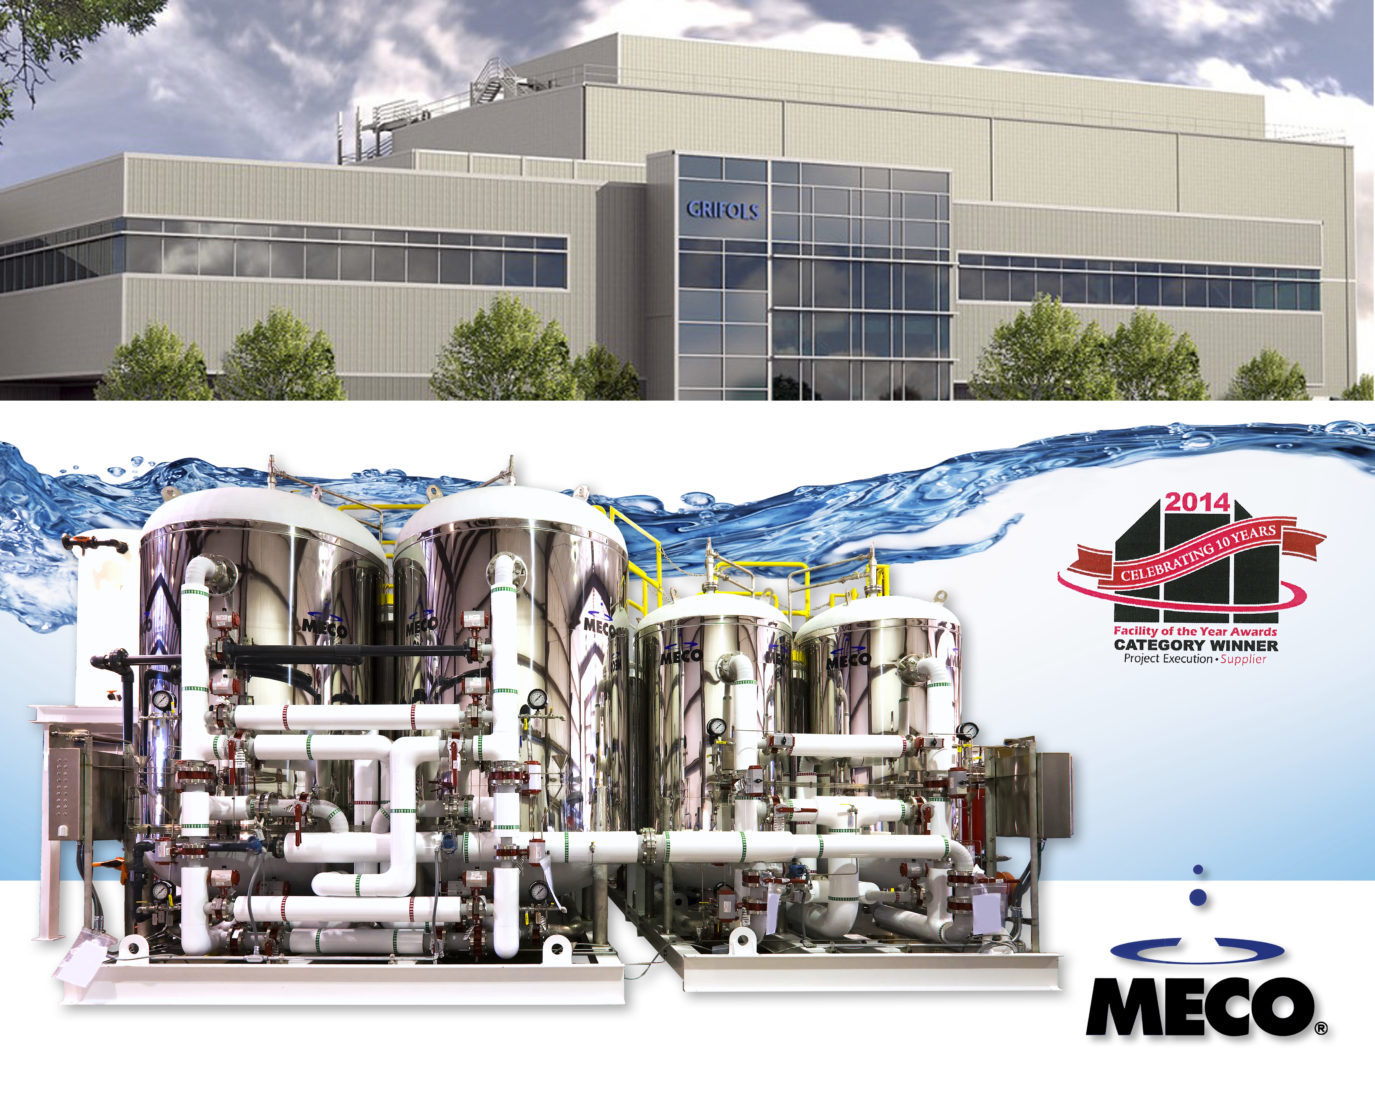 MECO Named a Major Equipment Supplier for ISPE's Annual Facility of the Year Award